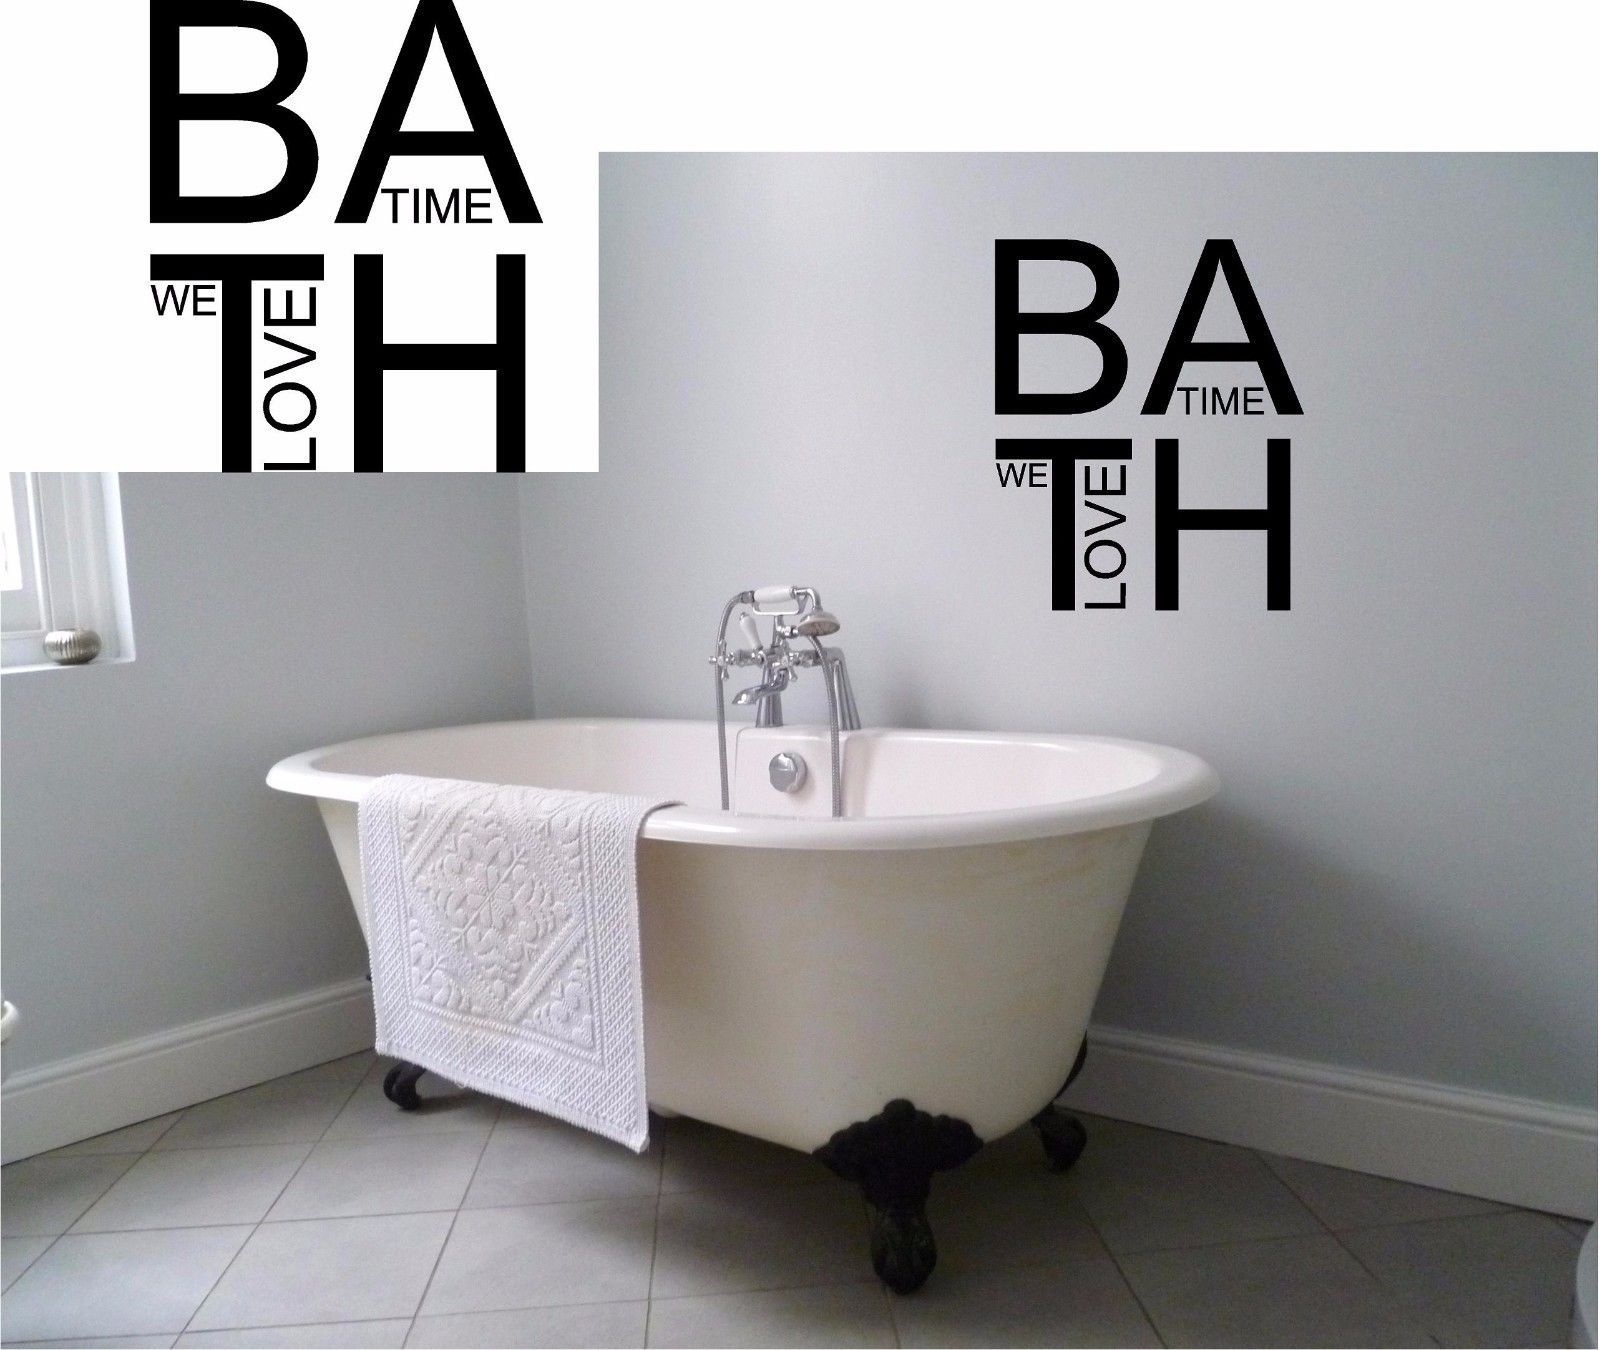 We Love Bathtime Bathroom Wall Decal Cute Funny Room Bath Vinyl Sticker